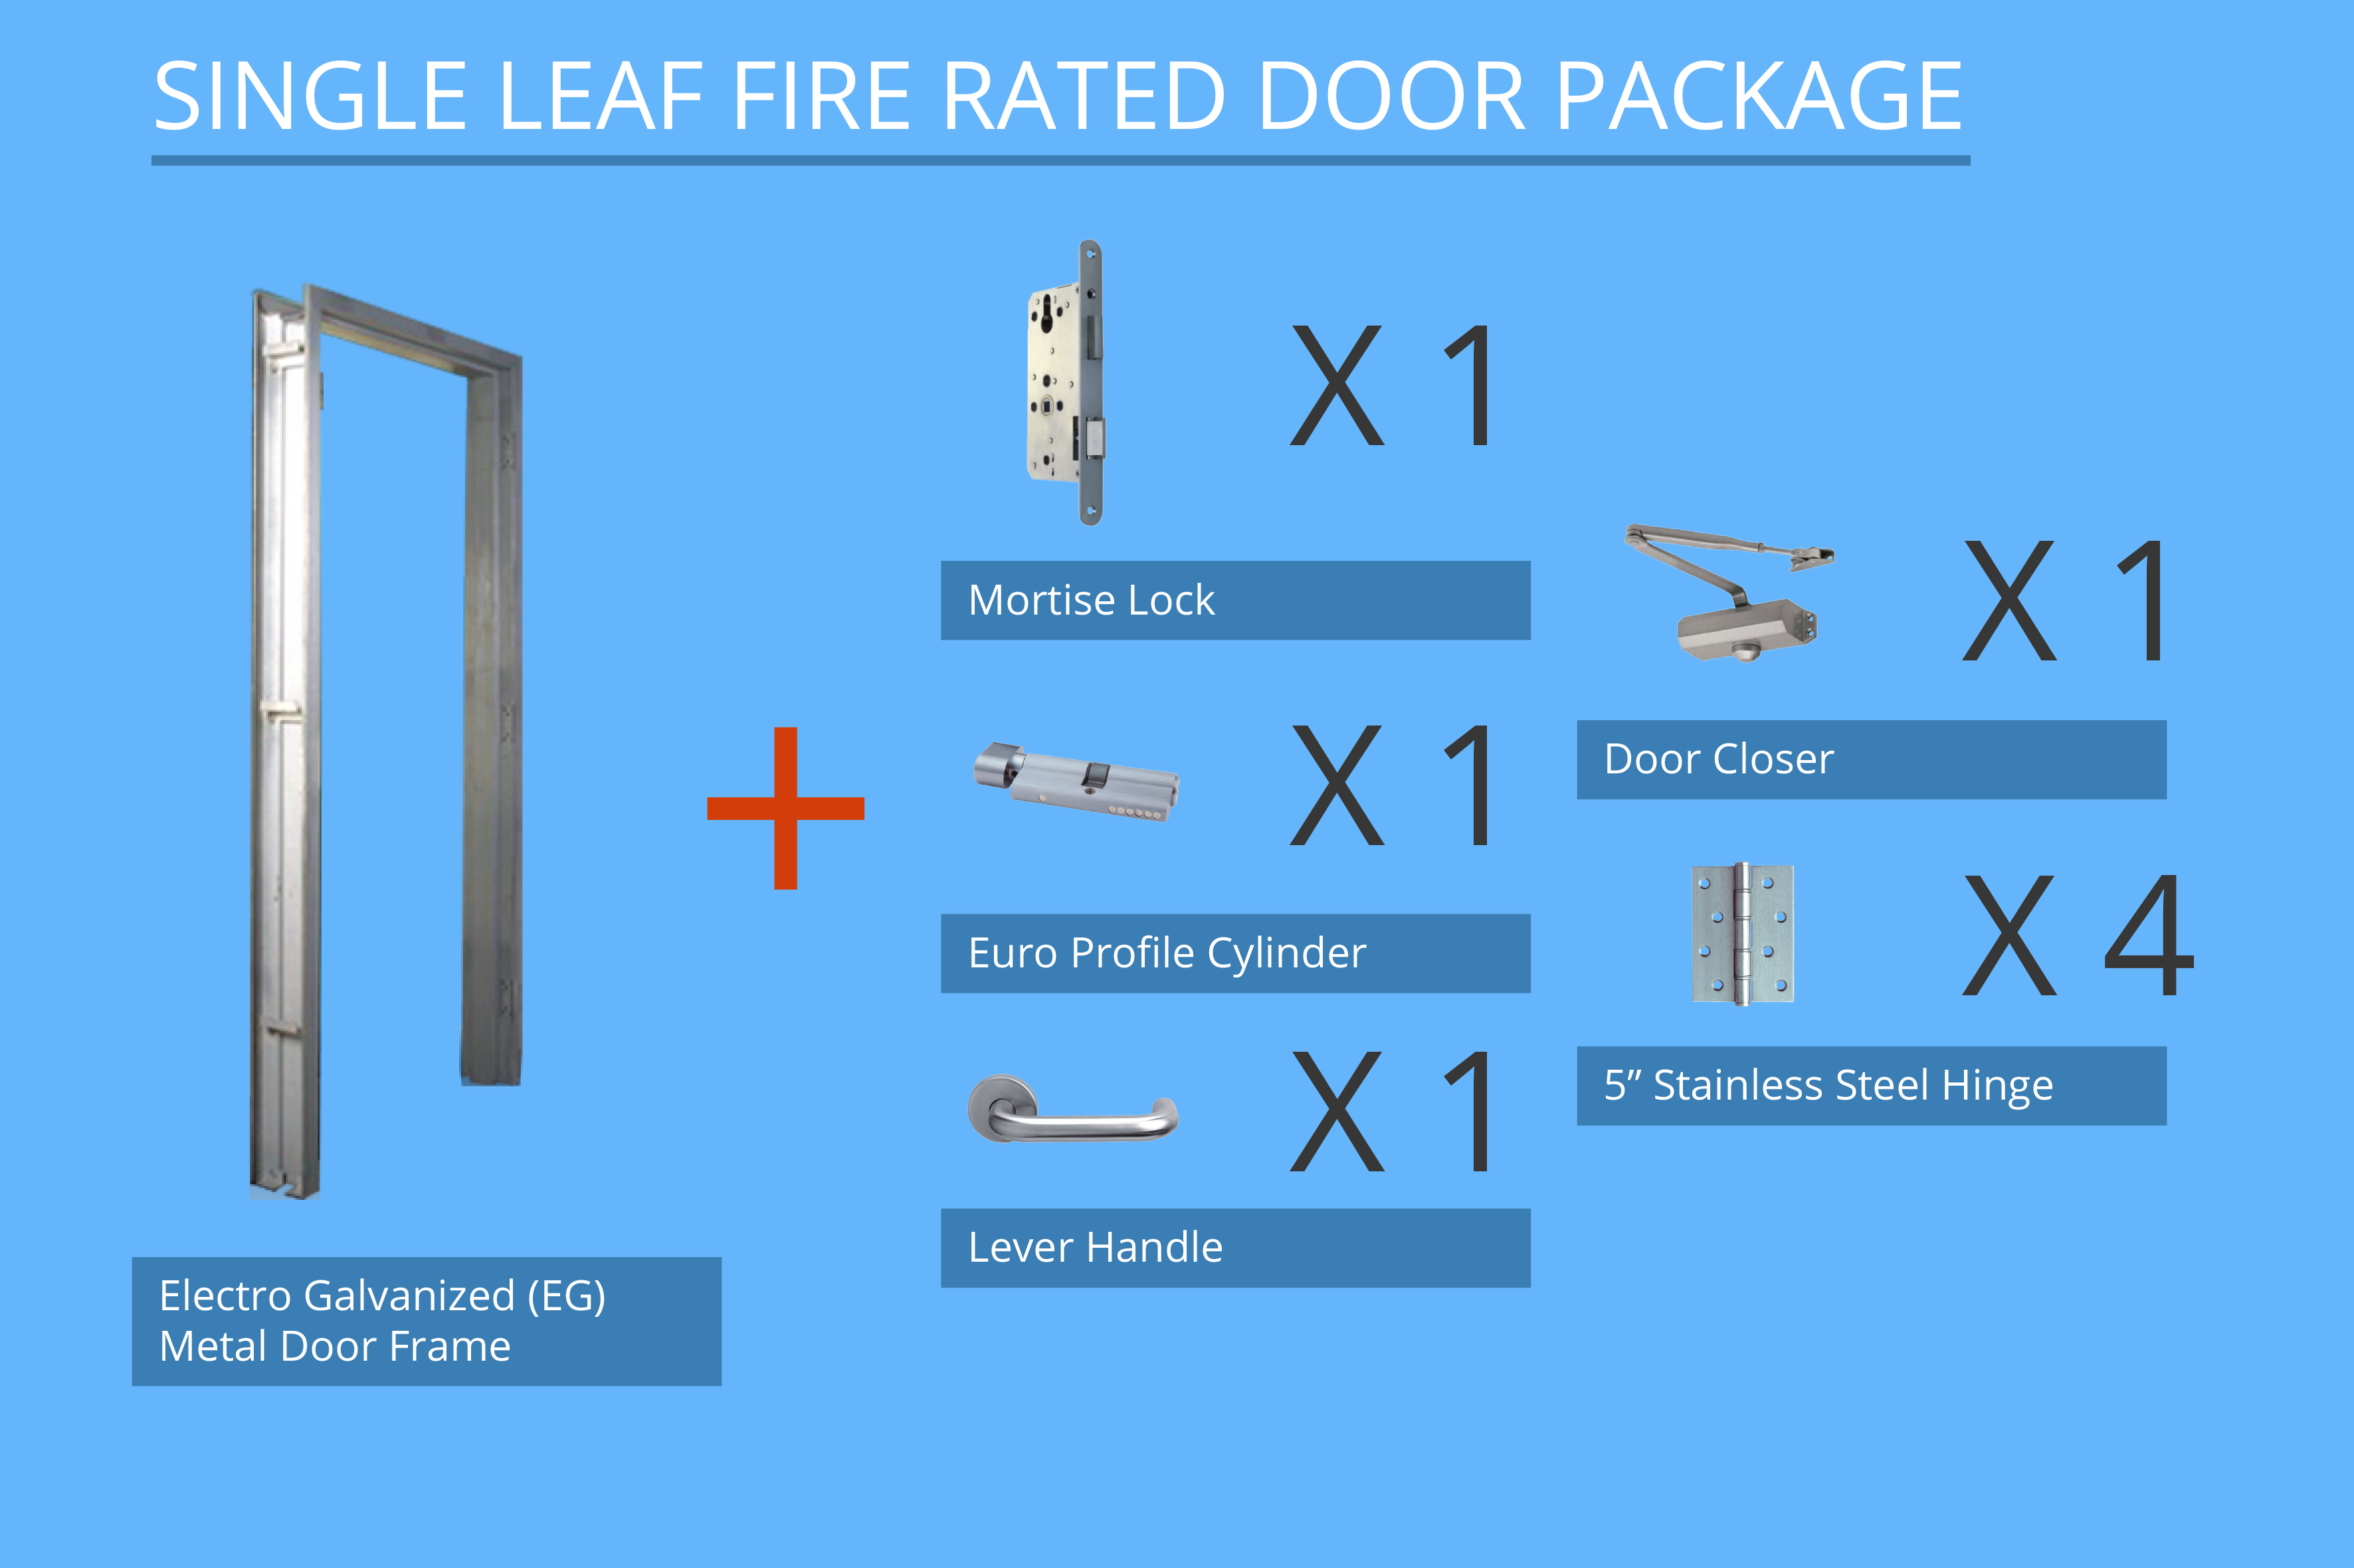 1 Hour Fire Rated Door In Selangor - Molicc